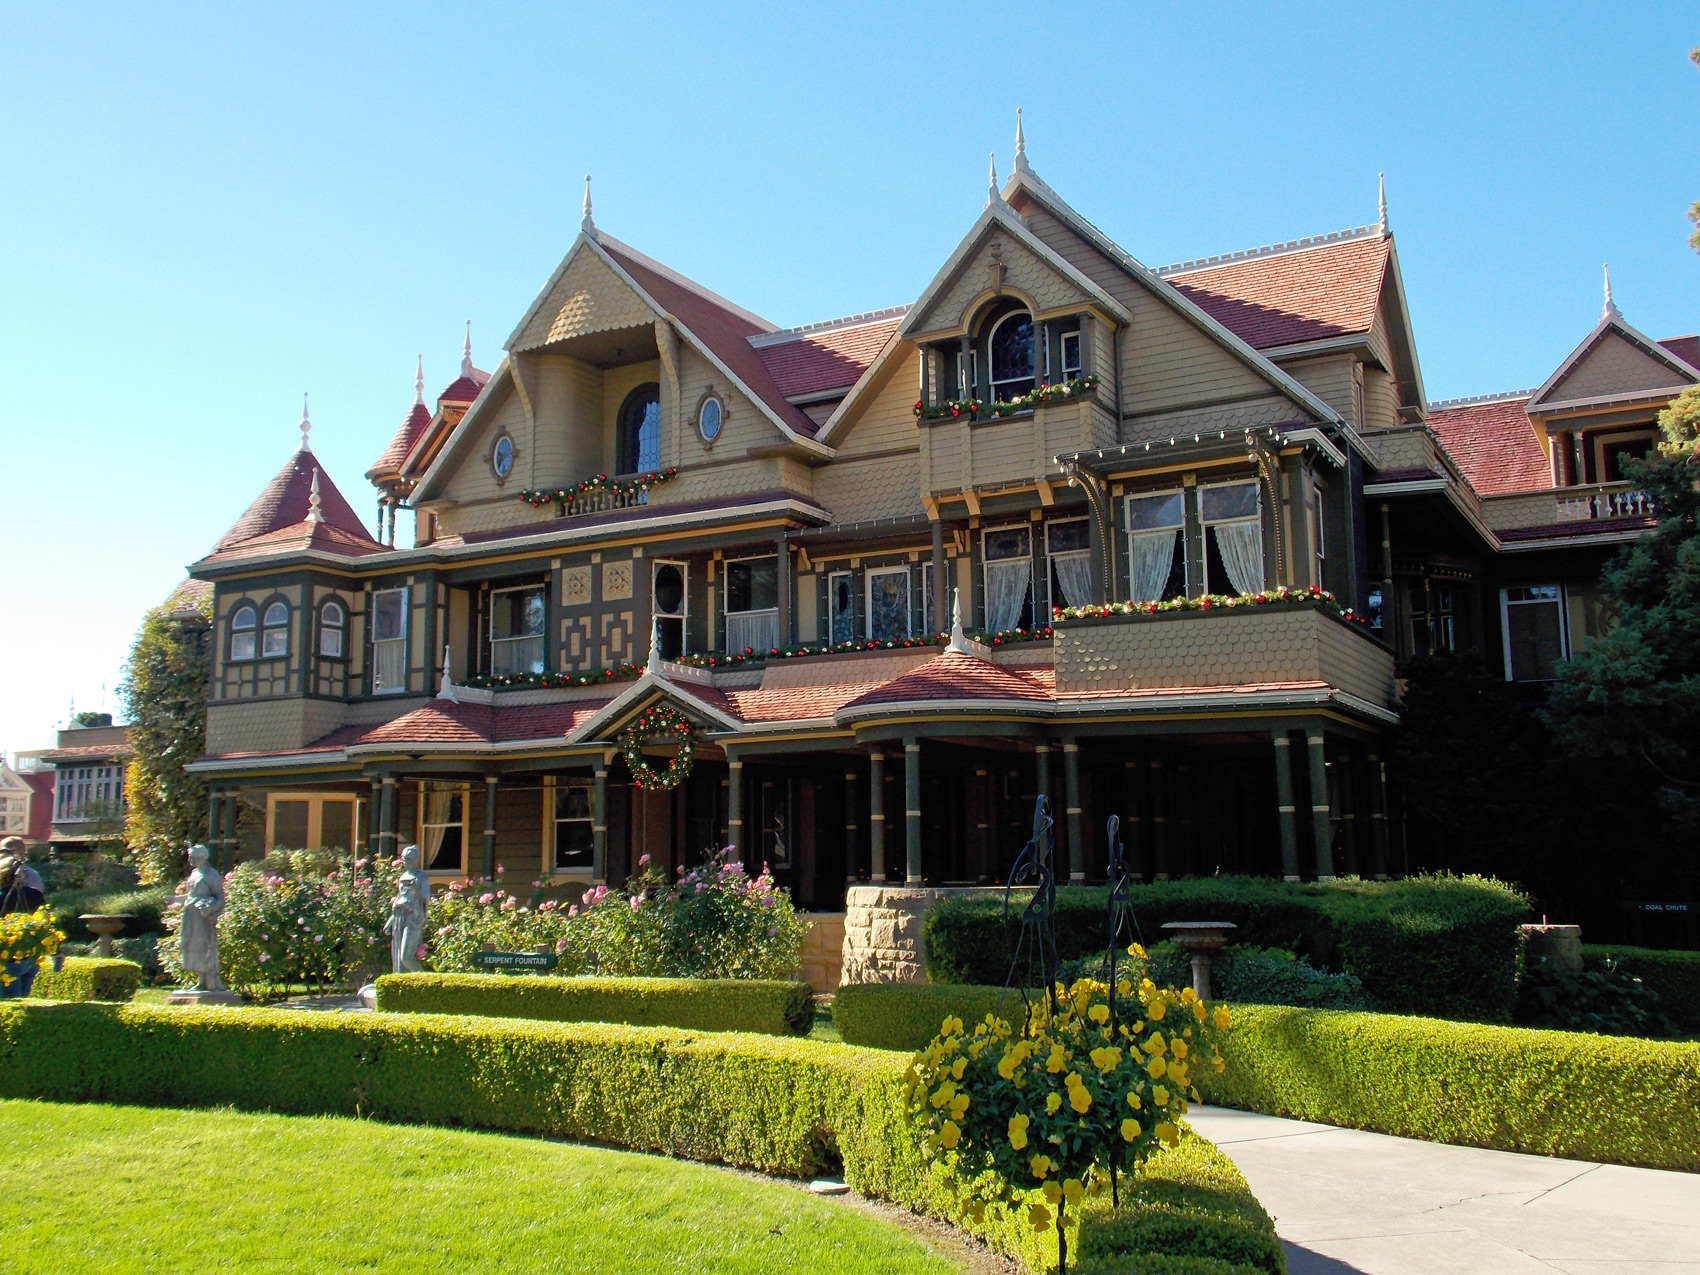 Winchester mystery house and landscaping